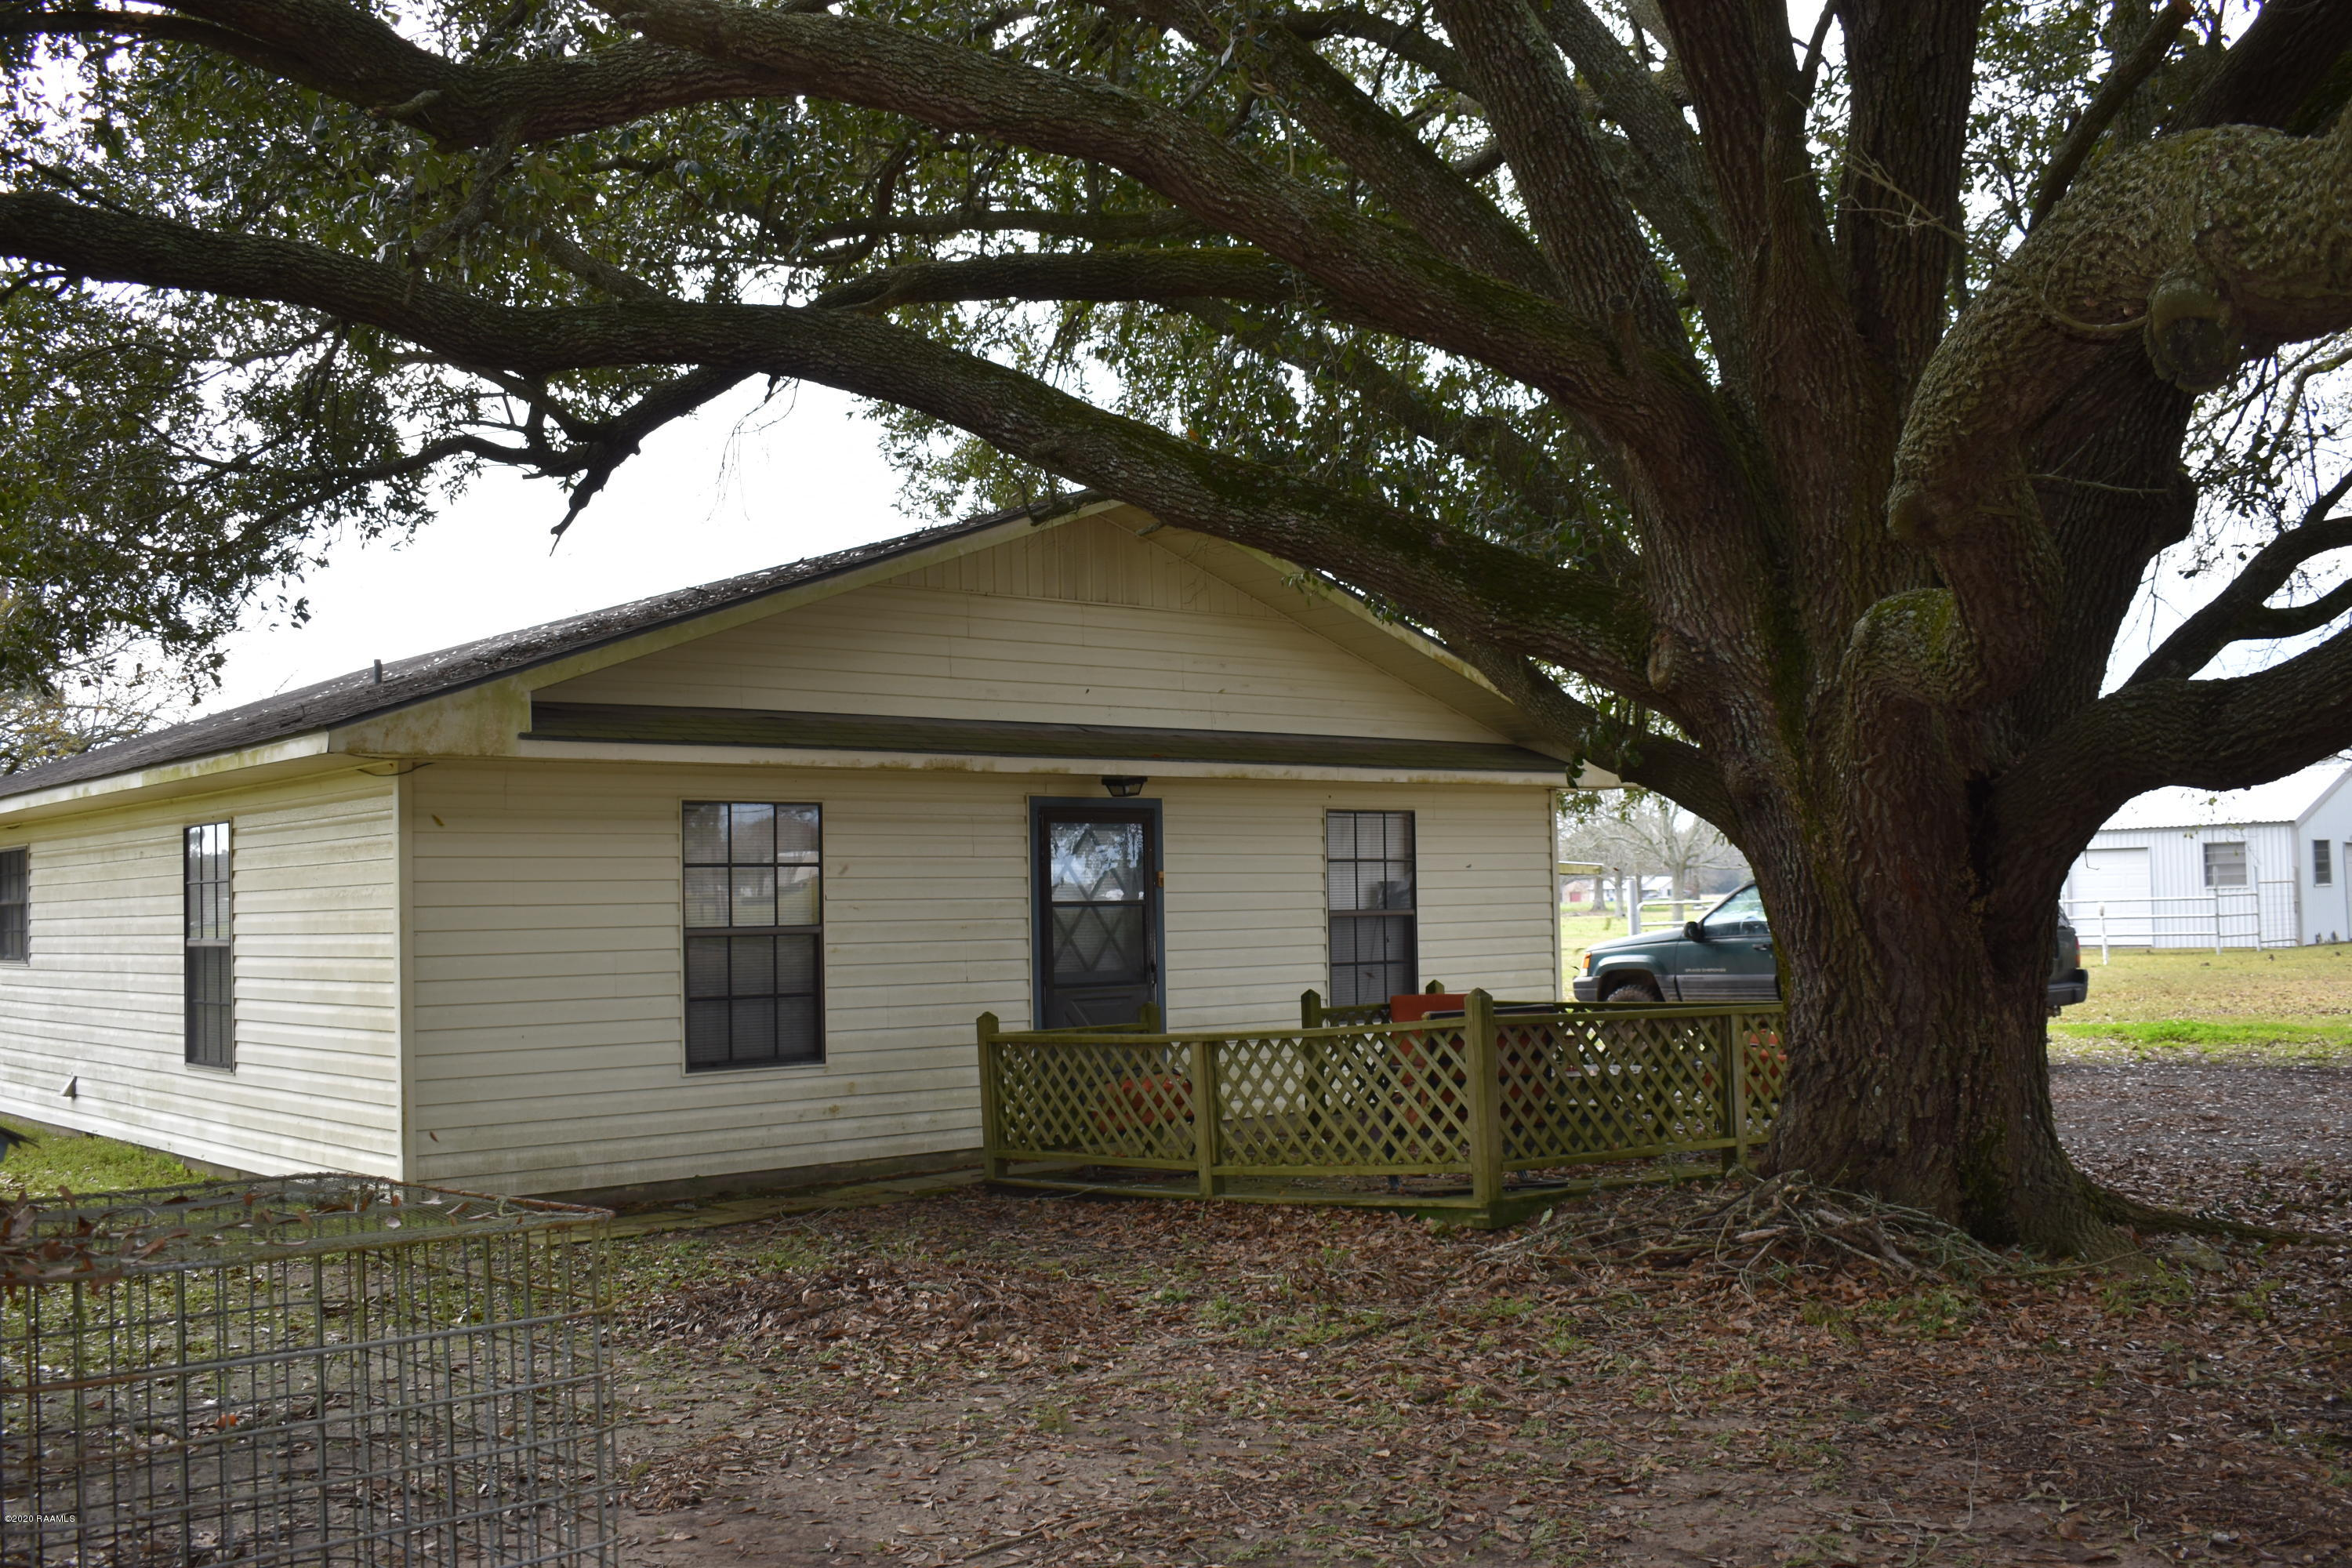 655 Saddle Drive, Eunice, LA 70535 Photo #19